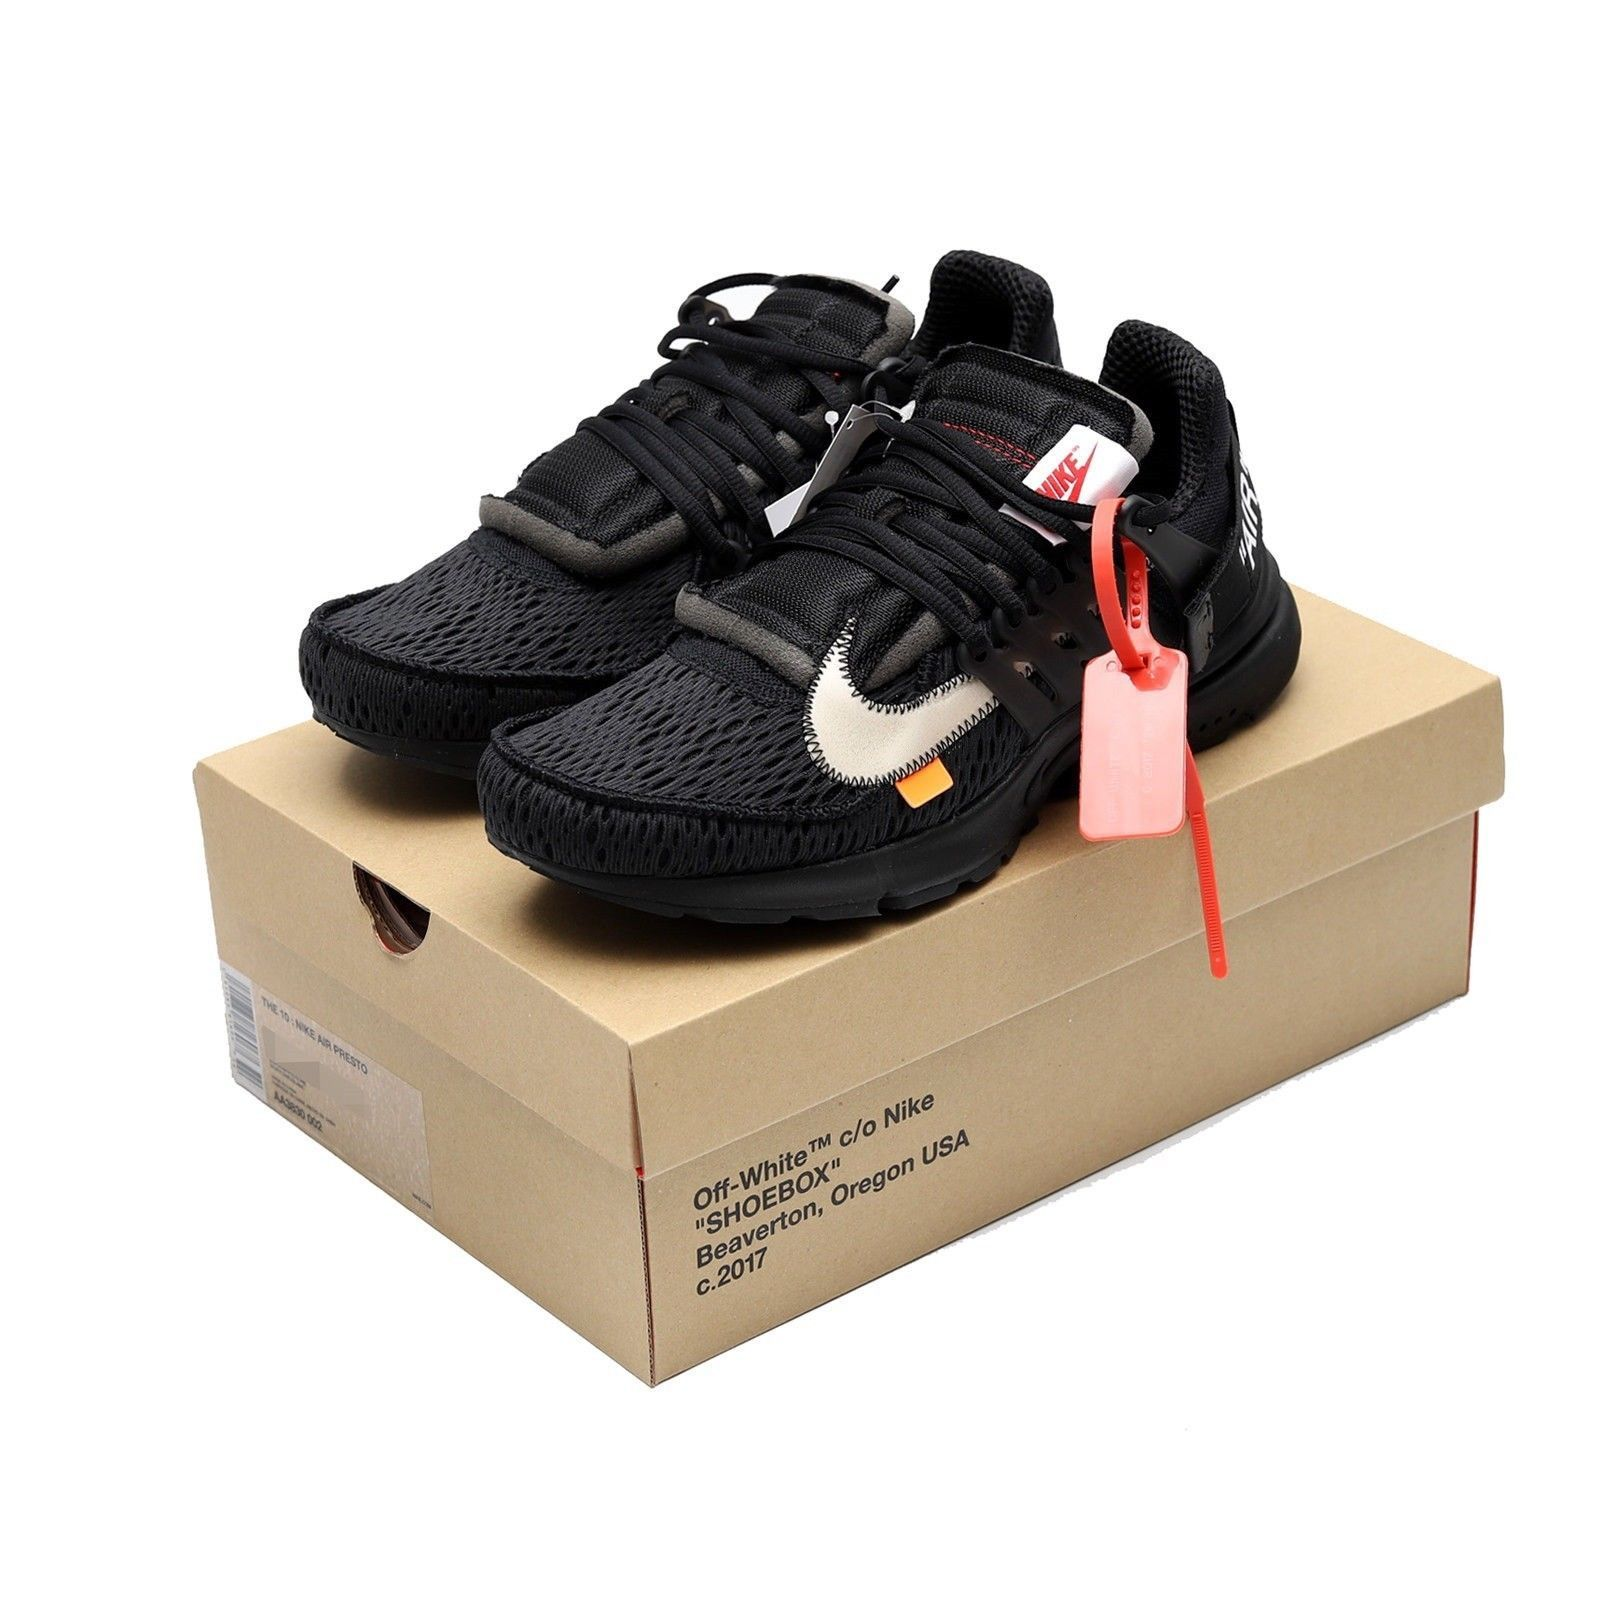 7558346740c Nike x Off White Presto The 10 Black and 50 similar items